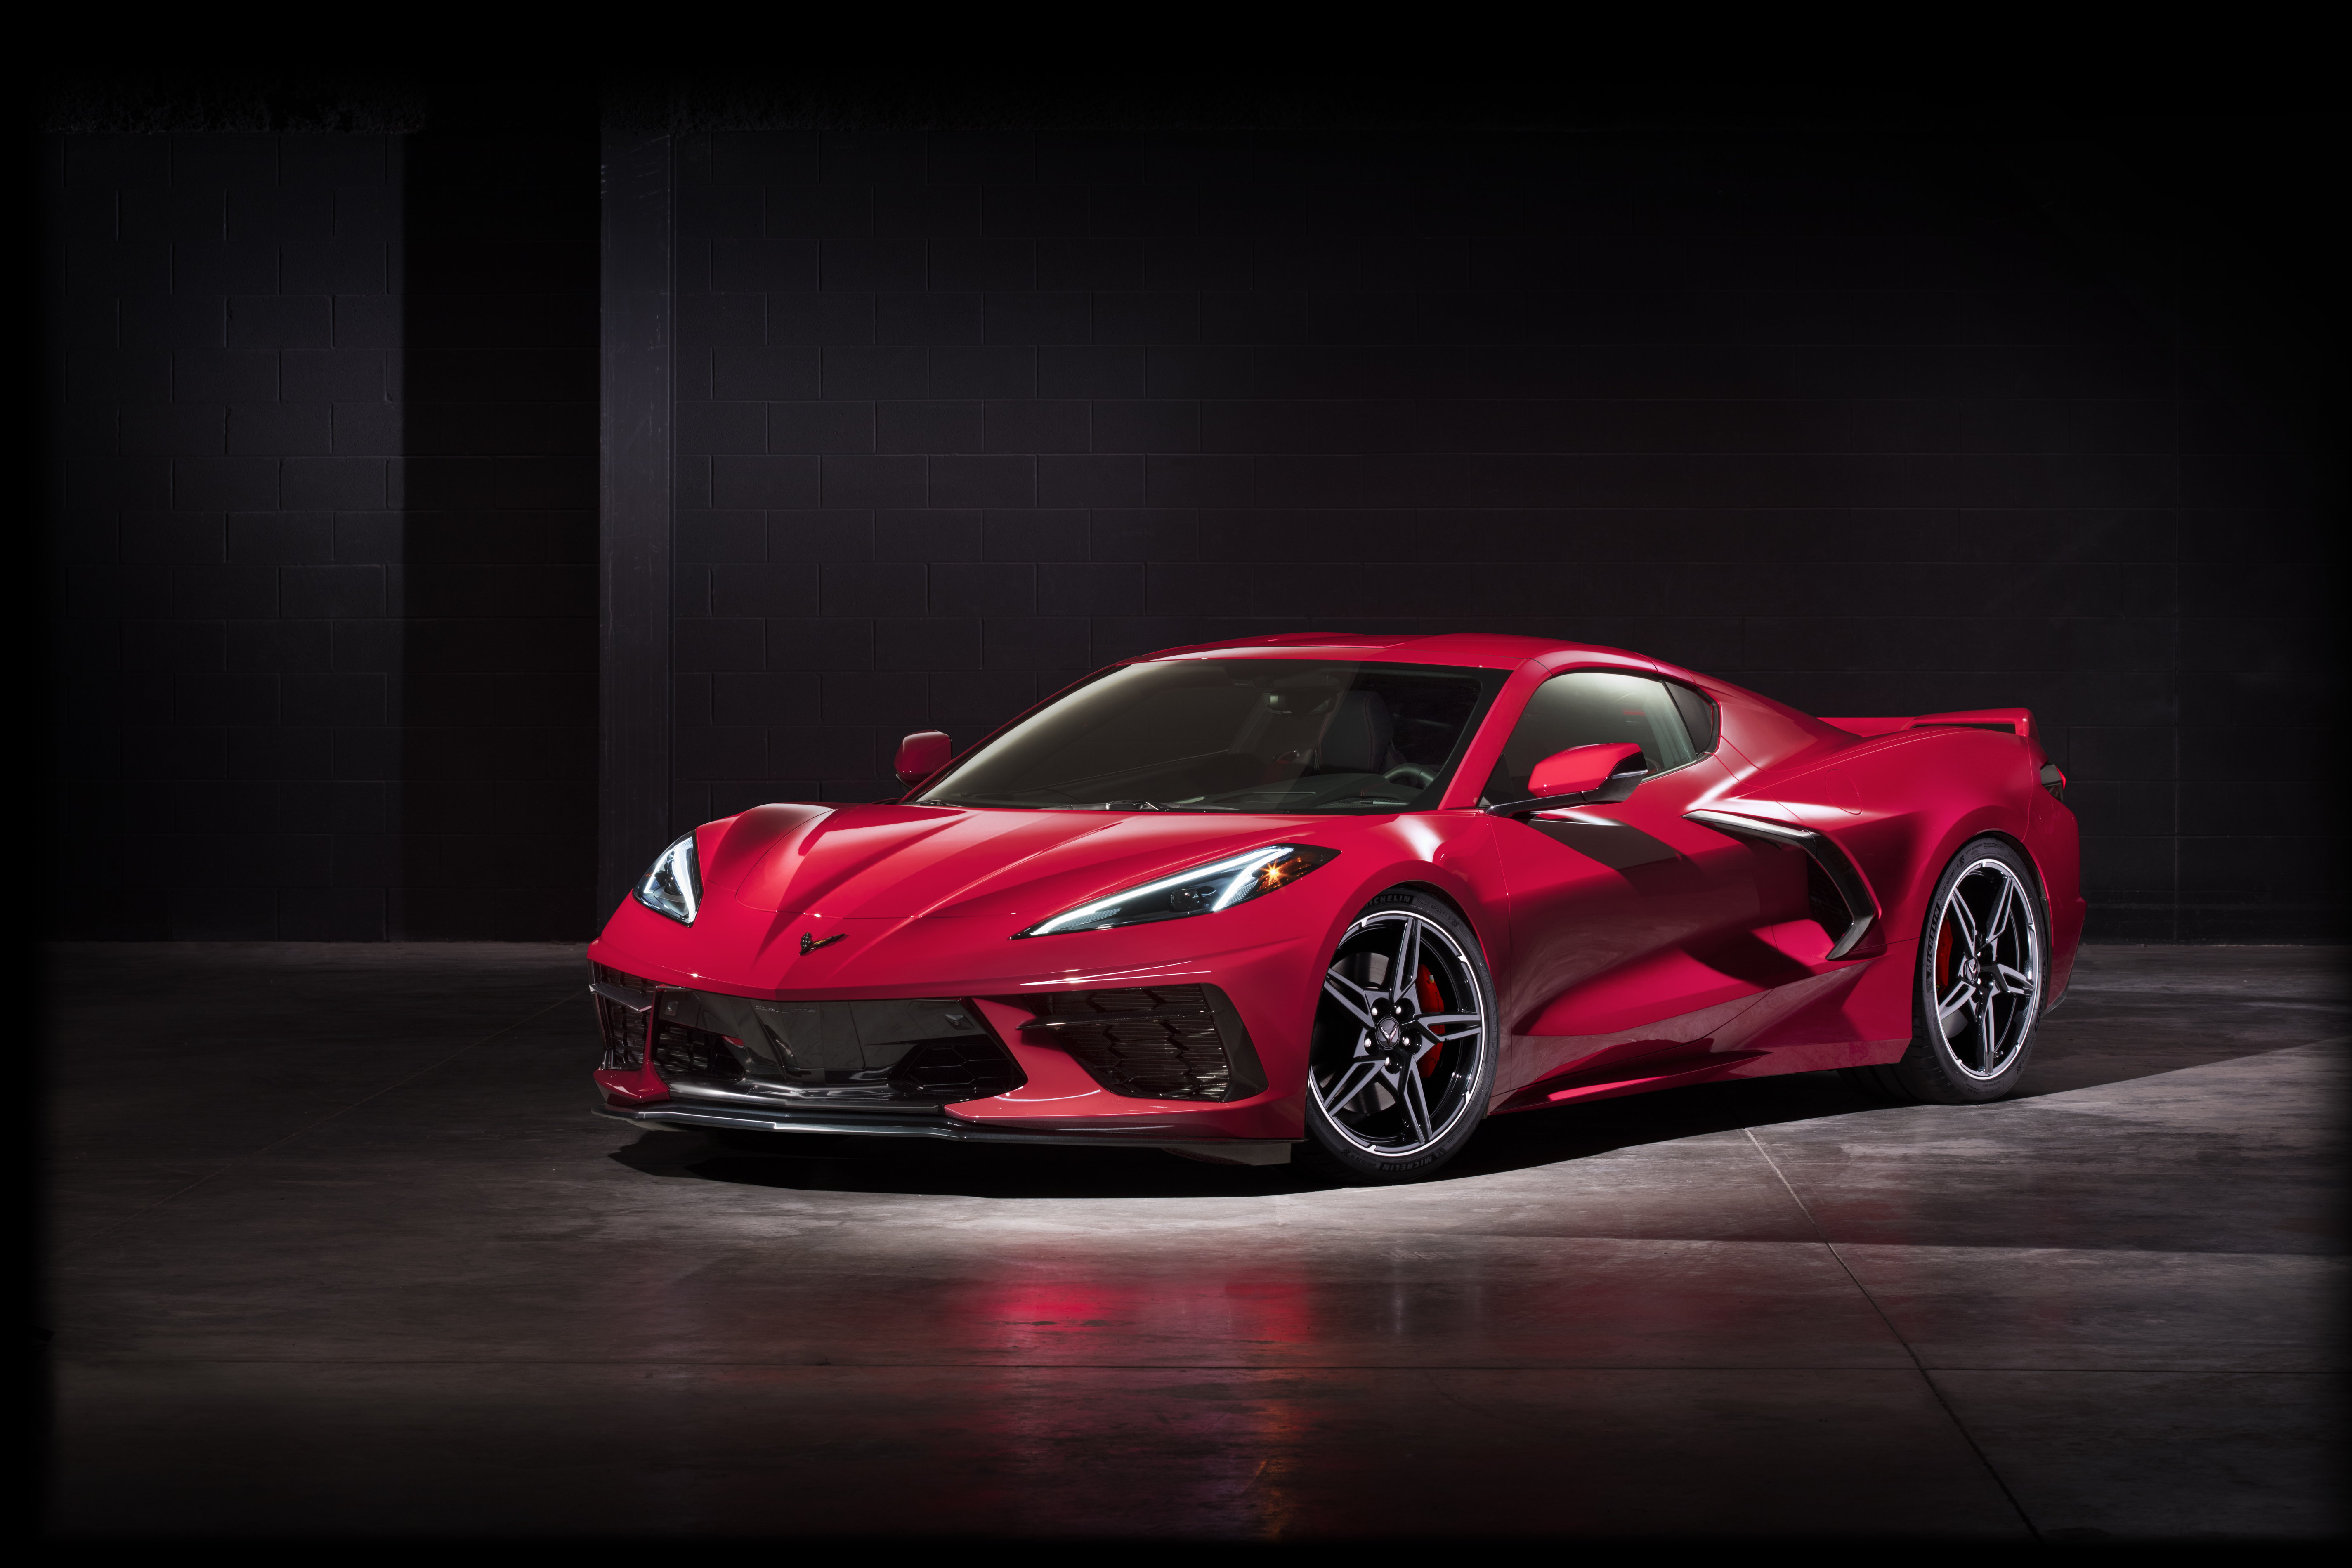 Leaked Specs Reveal 2020 Chevy C8 Corvette Is Quicker Than